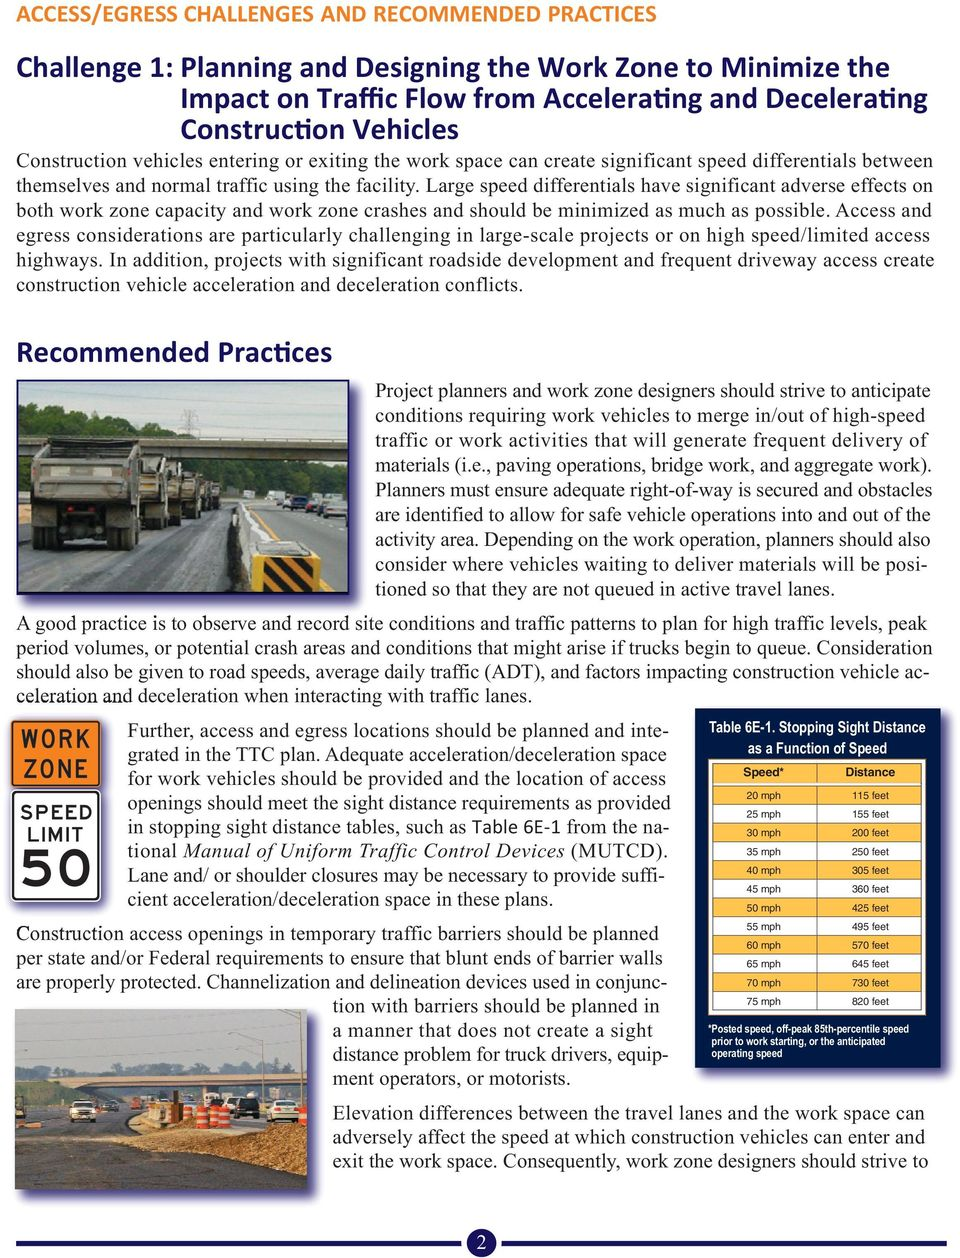 Large speed differentials have significant adverse effects on both work zone capacity and work zone crashes and should be minimized as much as possible.